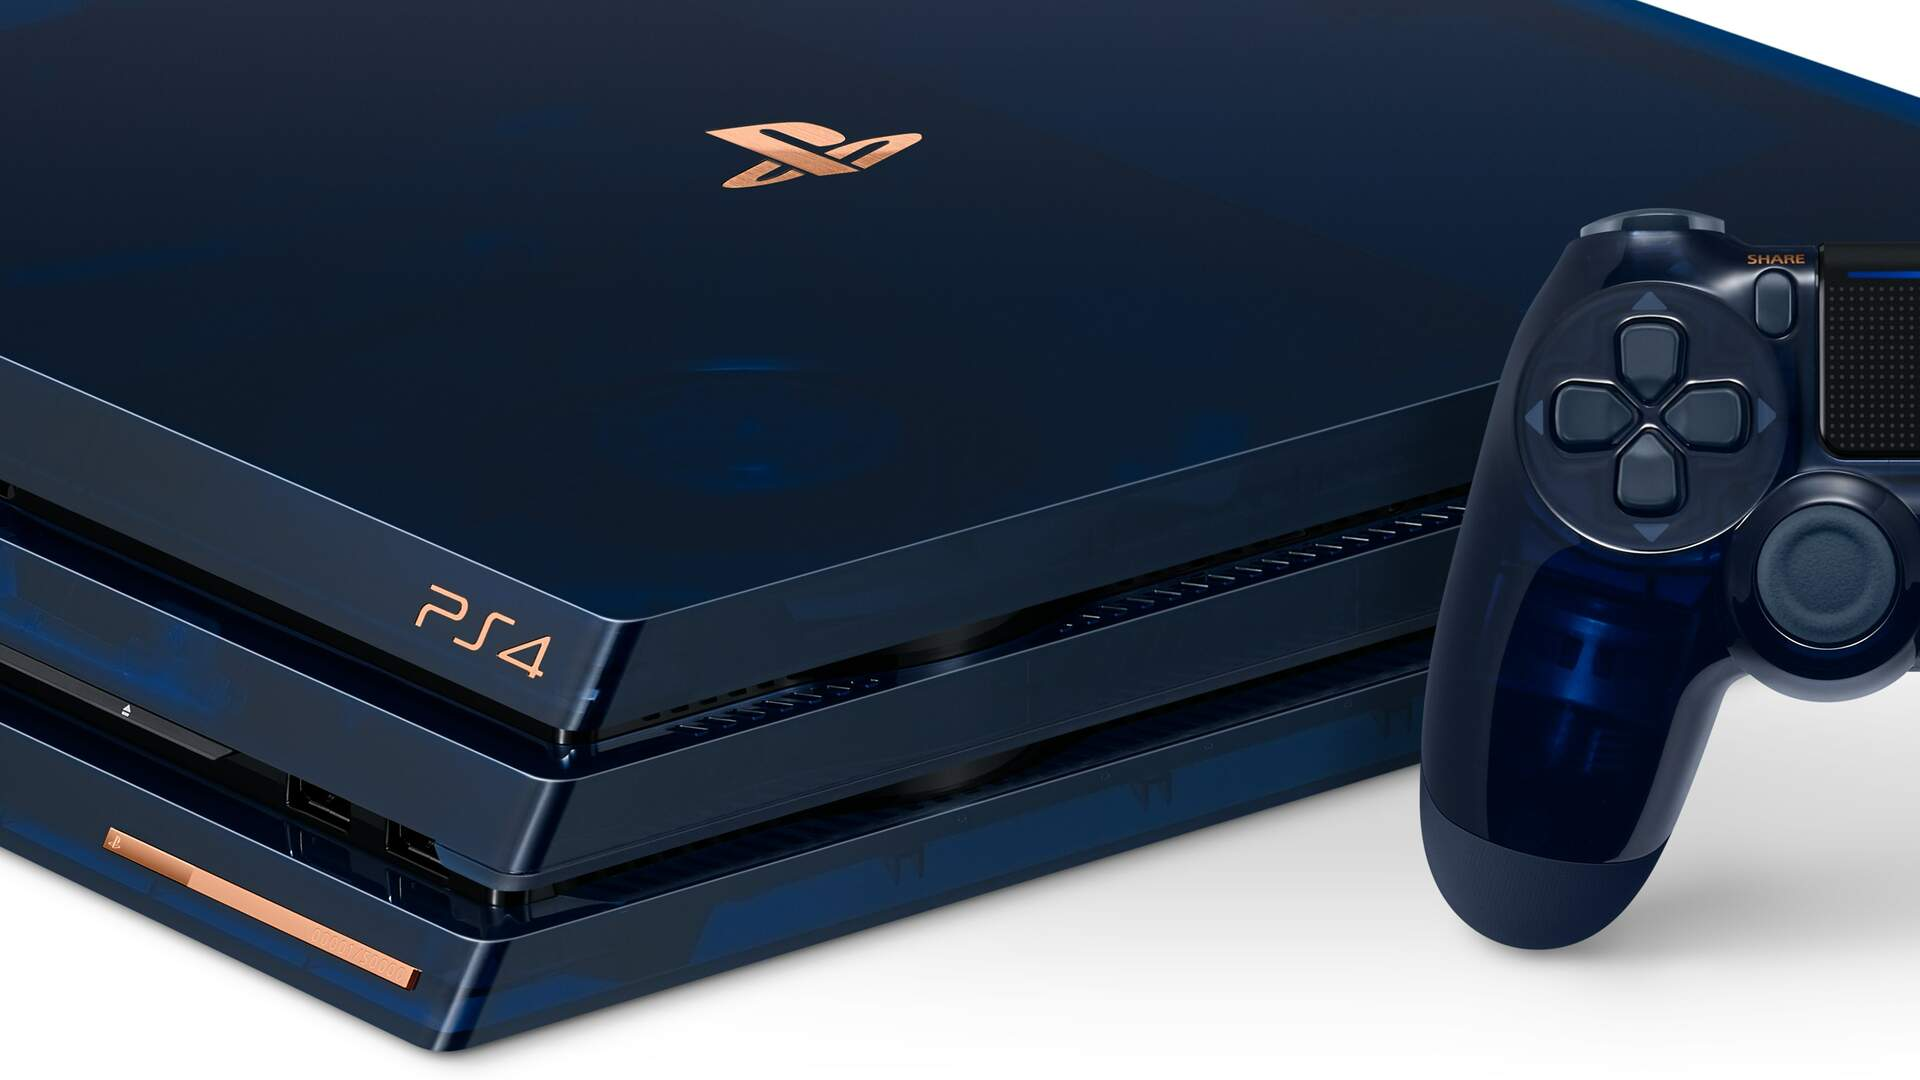 500 Million Limited Edition PS4 Pro Revealed, Features Translucent Shell